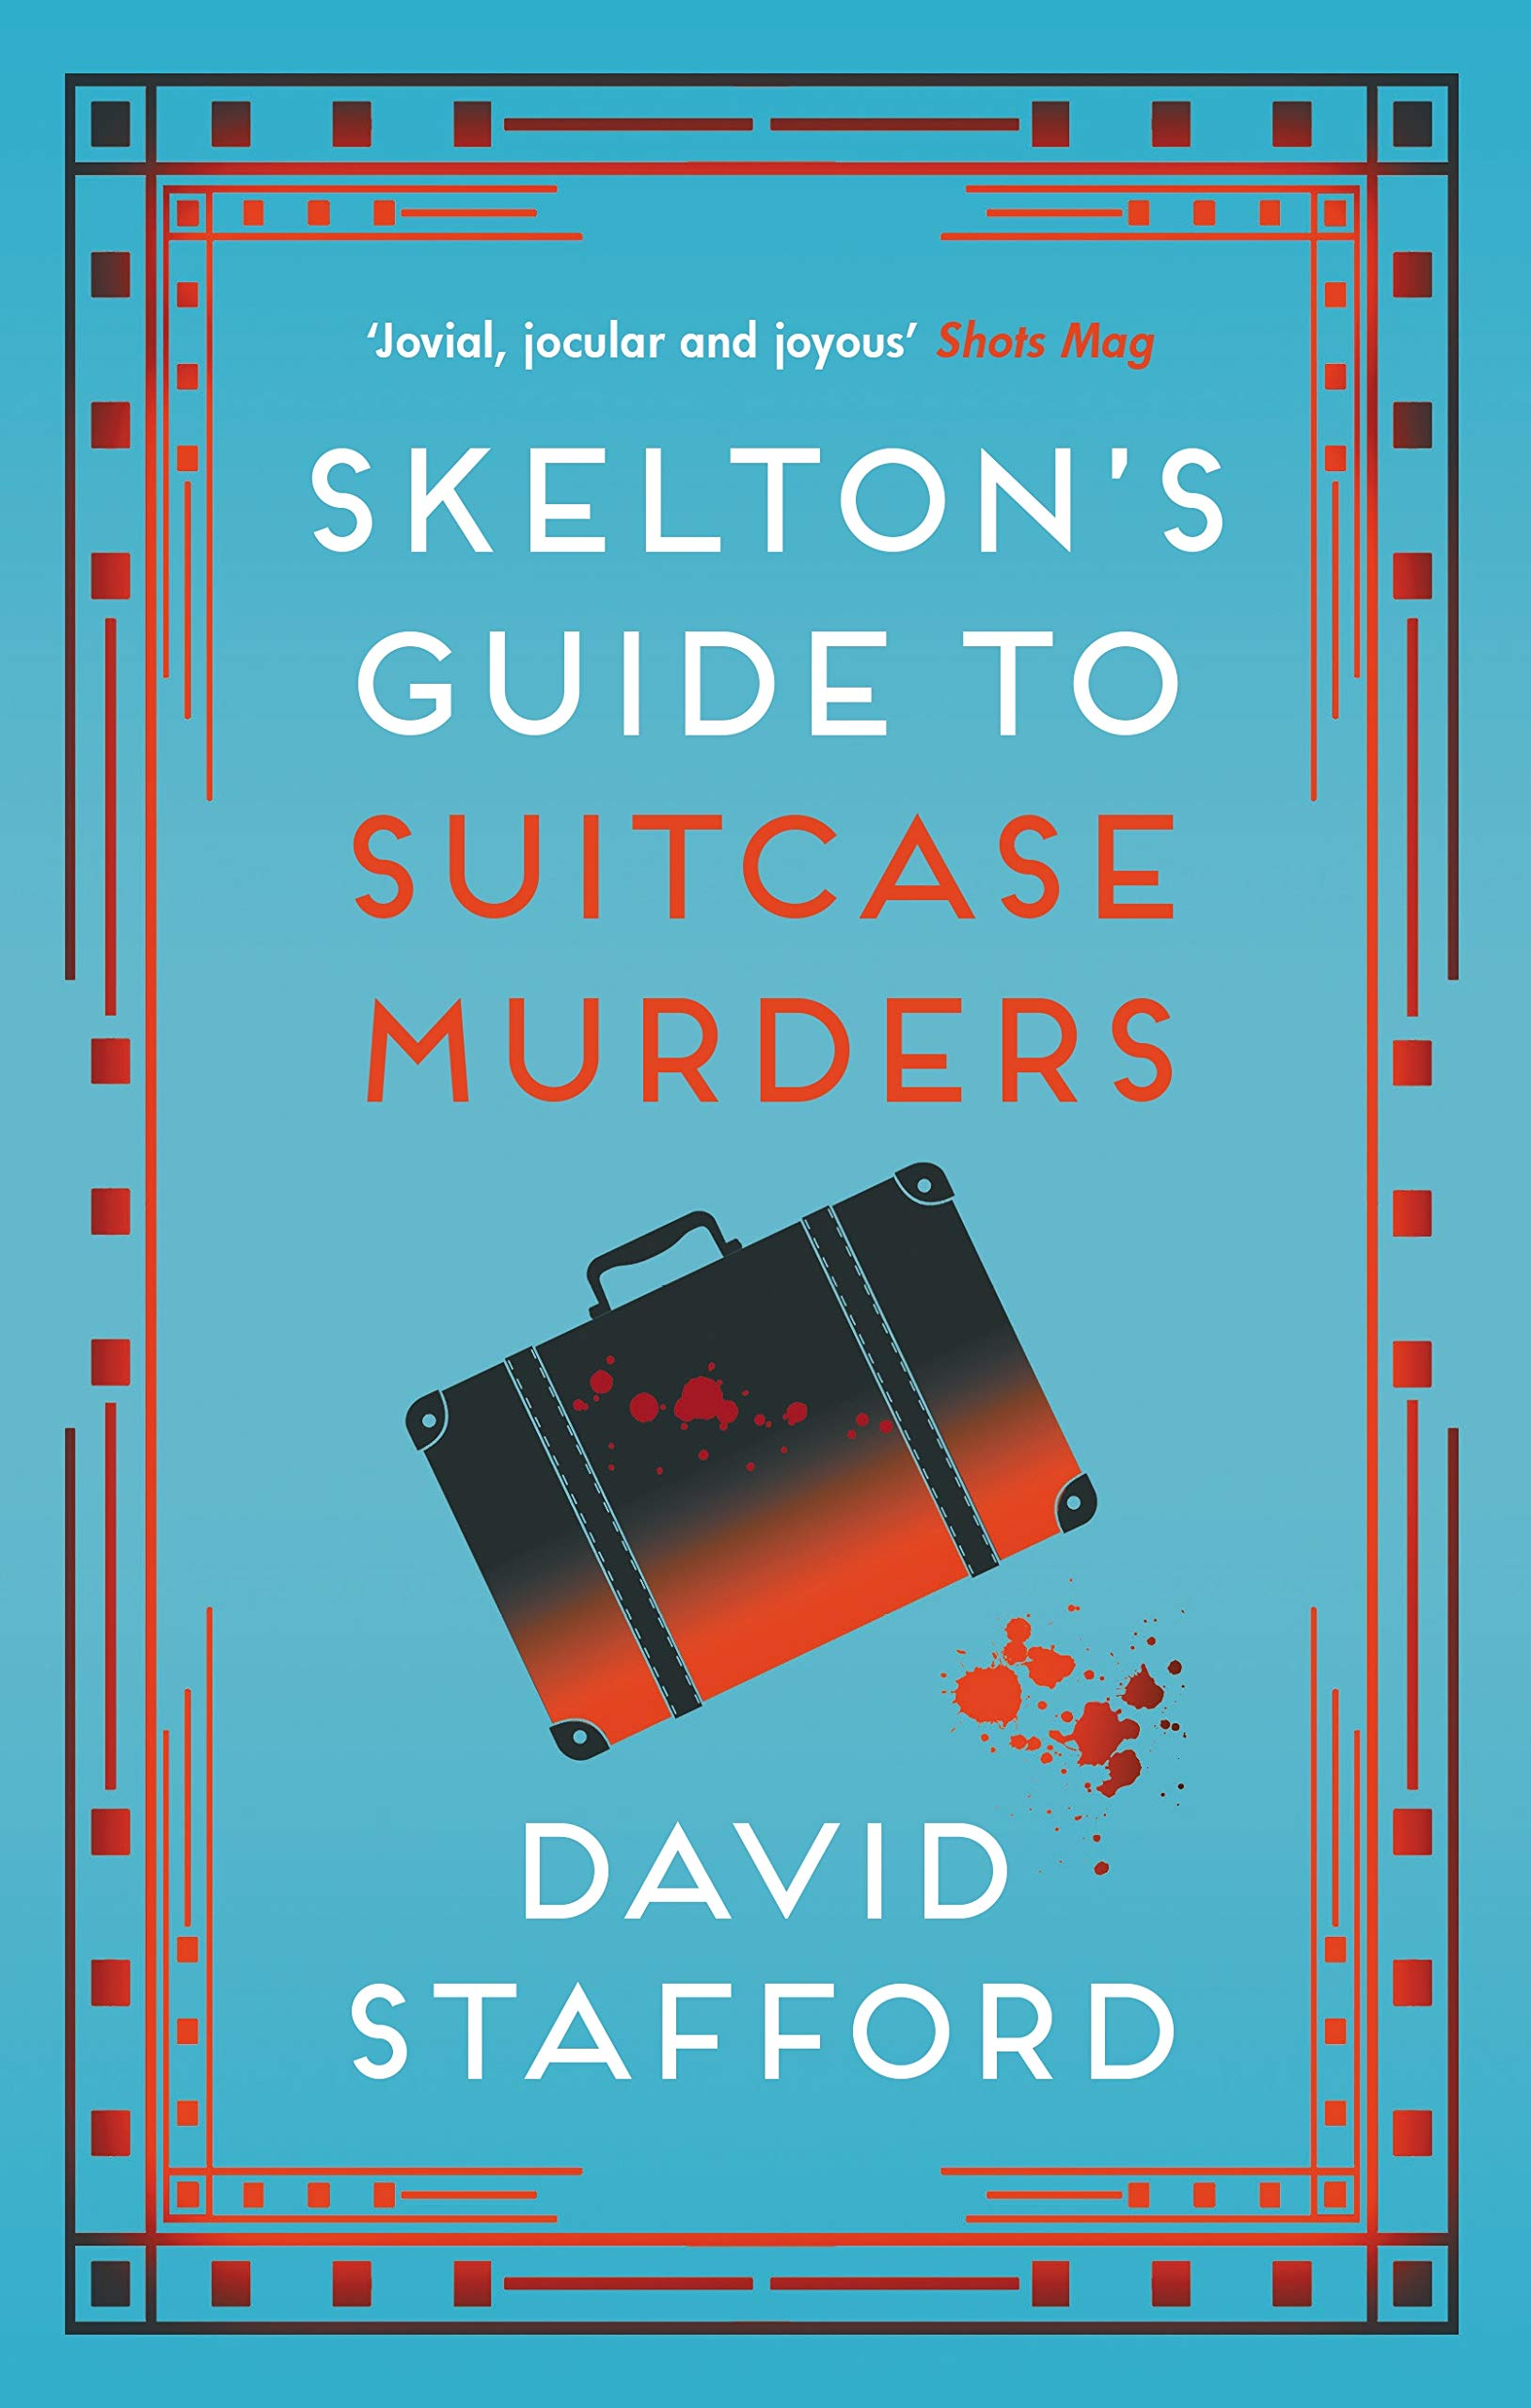 Skelton's Guide to Suitcase Murders: 2 (Skelton's Guides) (Skelton's Guides,  2): Amazon.co.uk: David Stafford: 9780749026882: Books